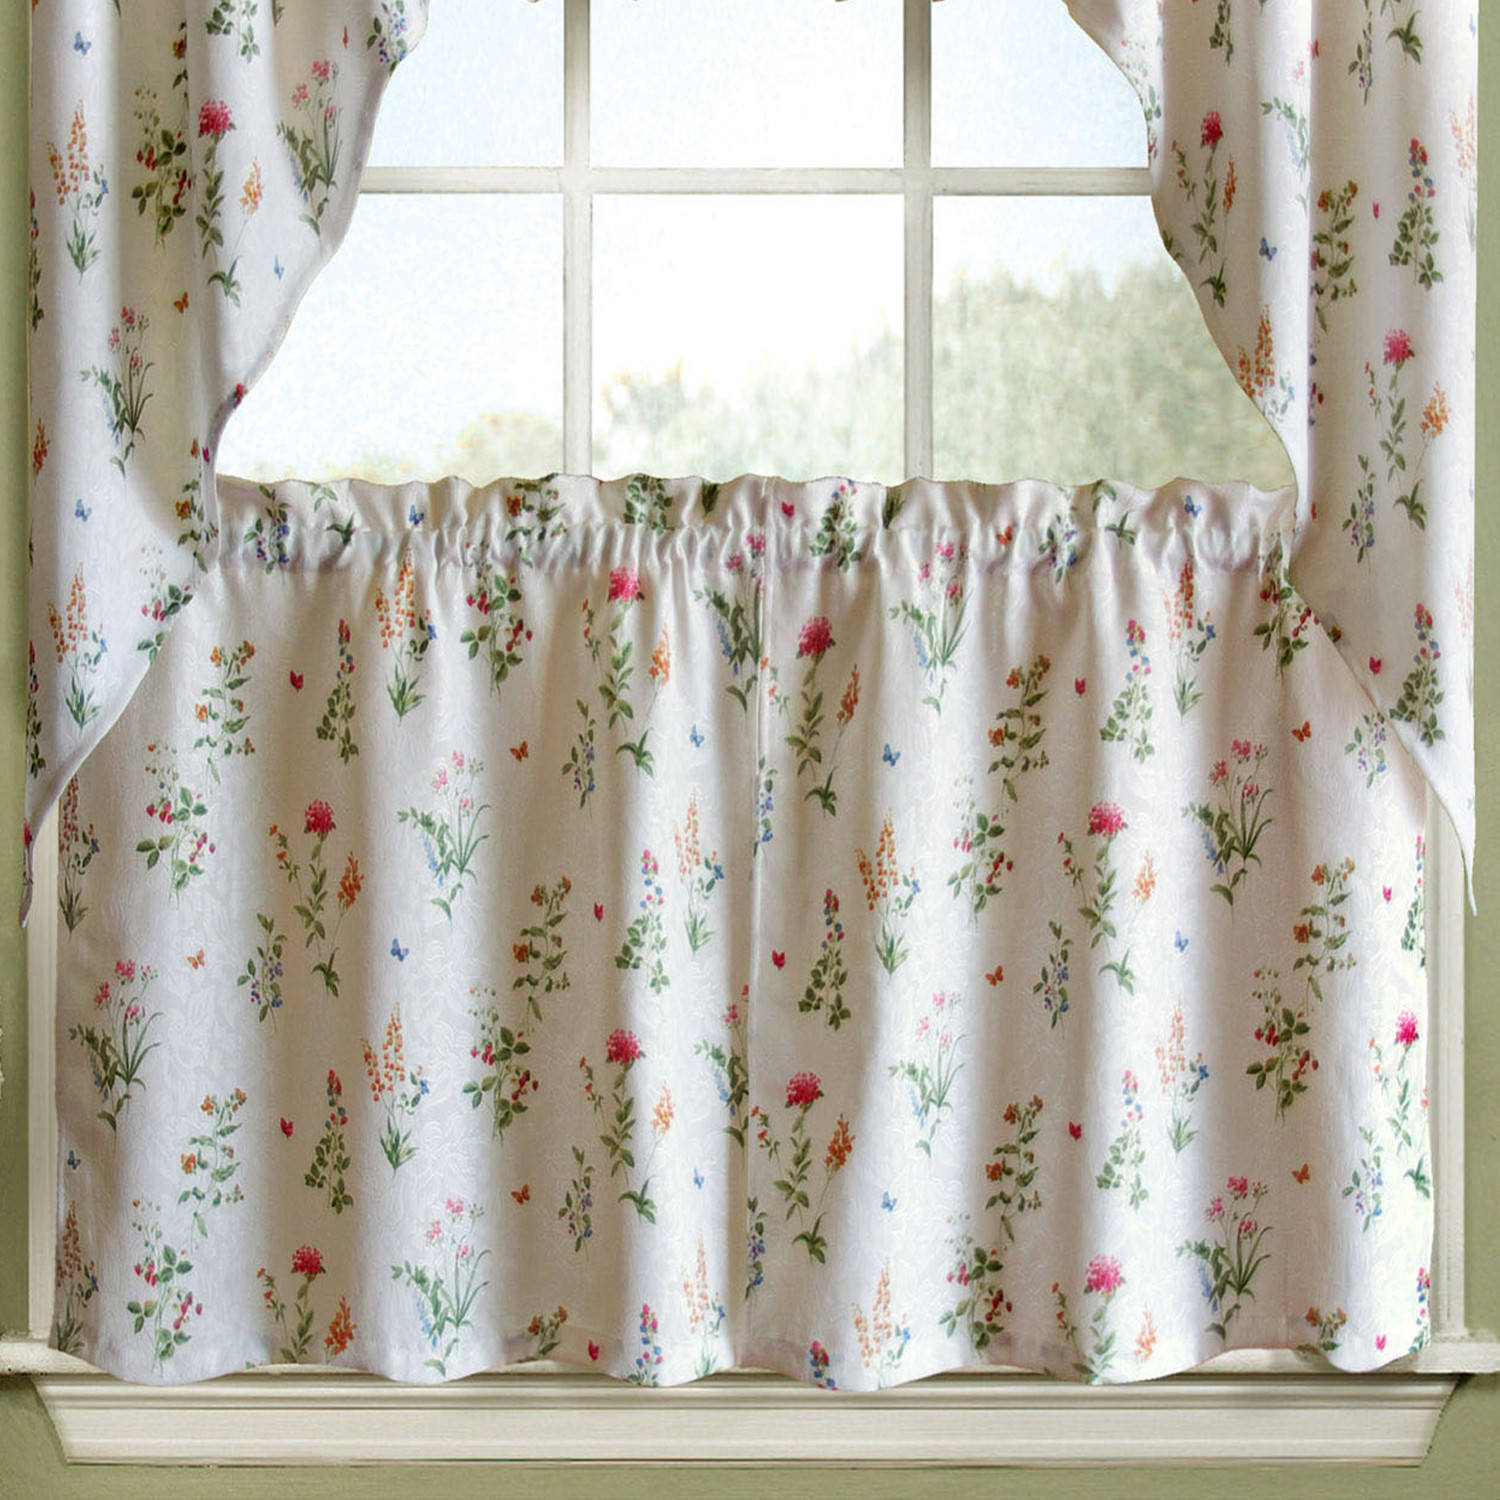 English Garden Floral White Jacquard Kitchen Curtains Tier, Valance Or Swag Within Chardonnay Tier And Swag Kitchen Curtain Sets (View 16 of 20)